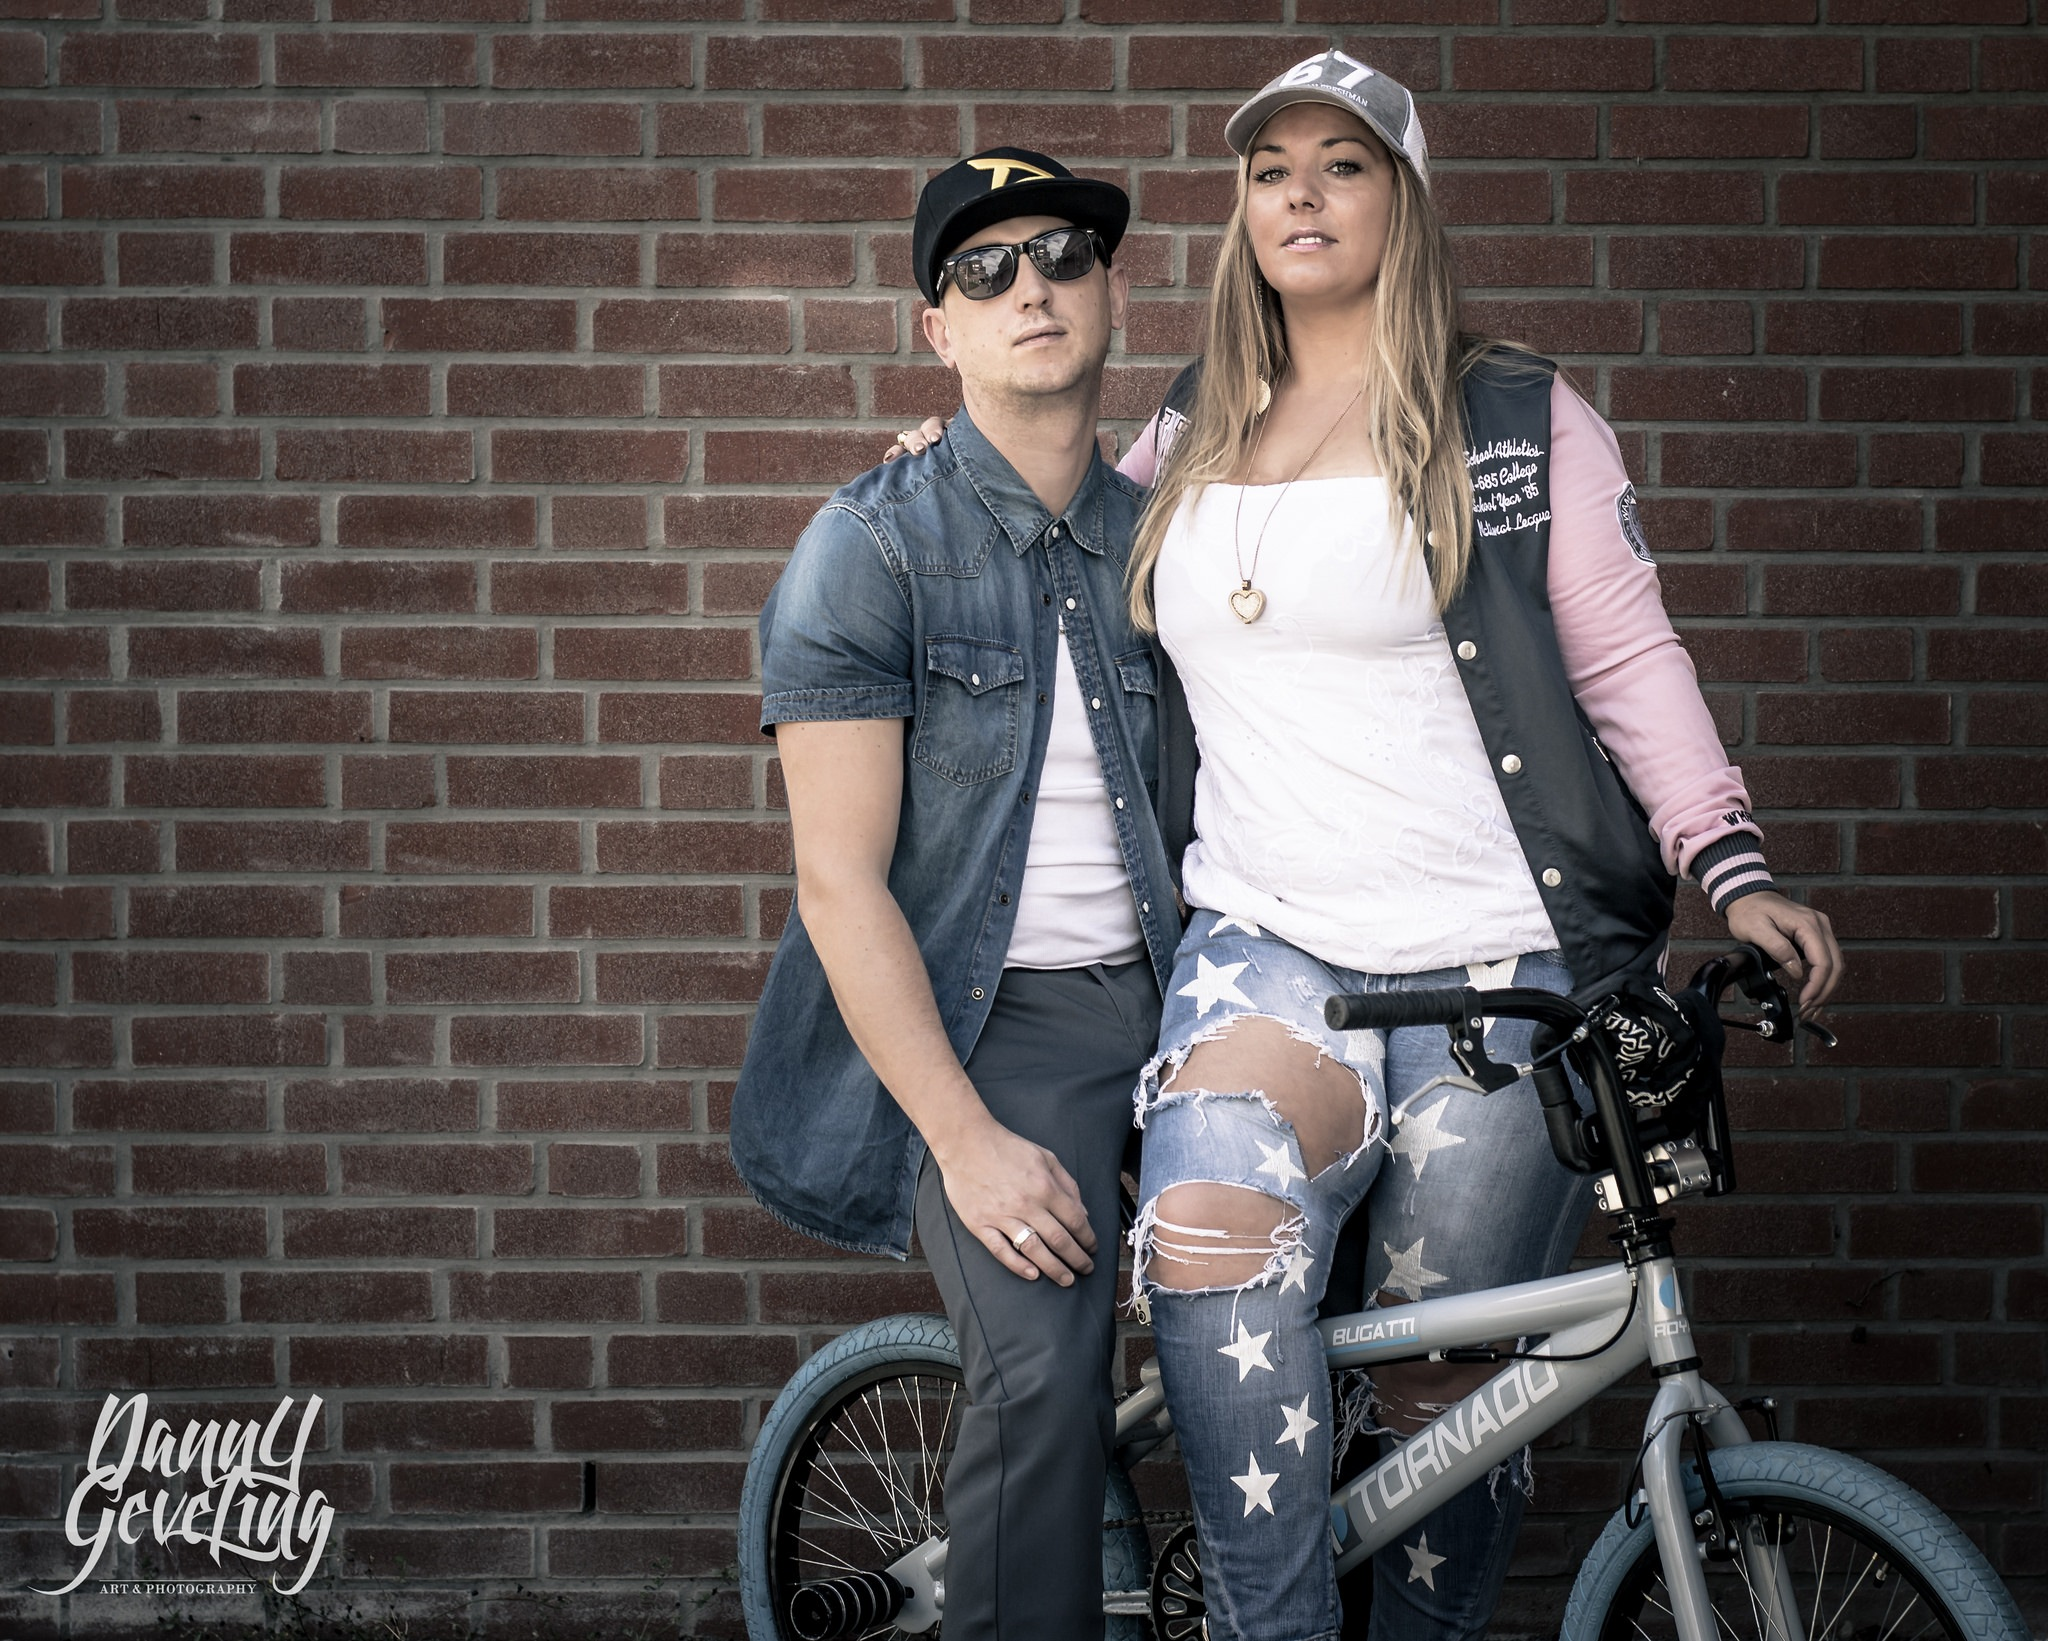 thuglife themed shoot by DannyGeveling